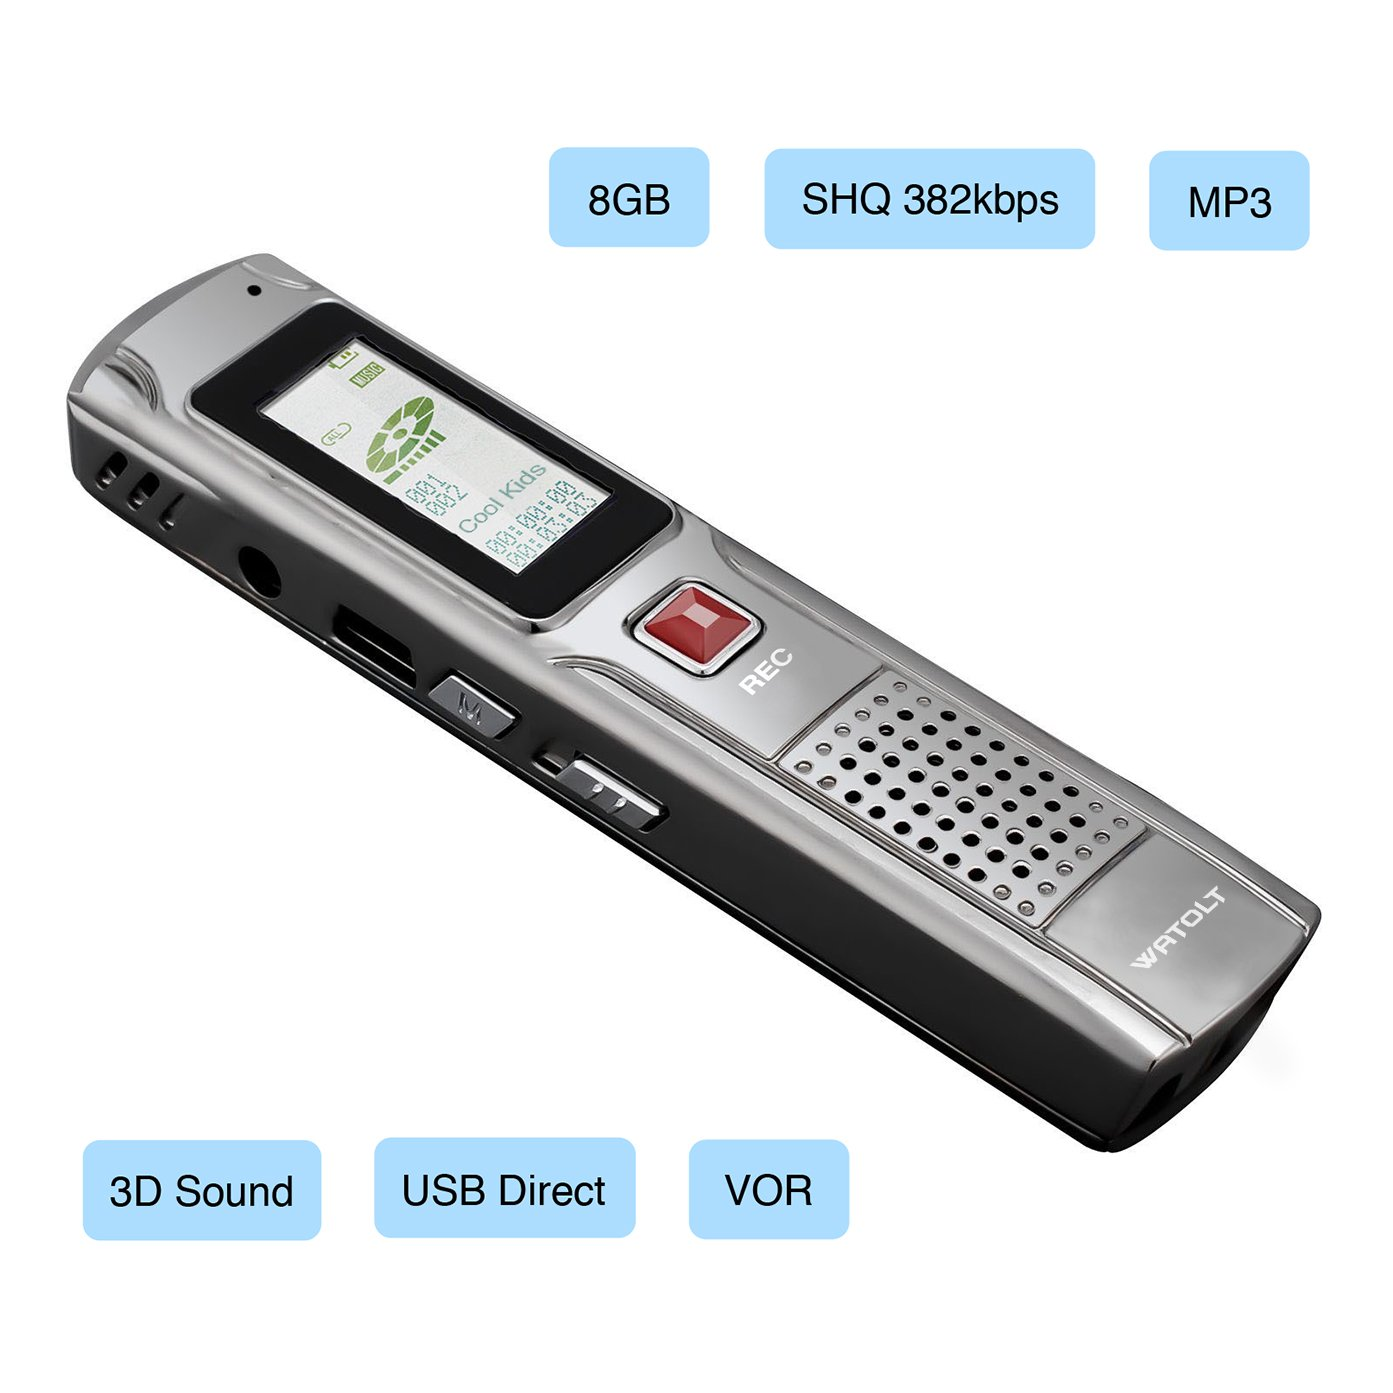 Digital Voice Recorder Rechargeable Dictaphone - MP3 Player - 25 Hours USB Audio Recordable Pen - for Students College Lectures (8GB) by Watolt (Image #3)